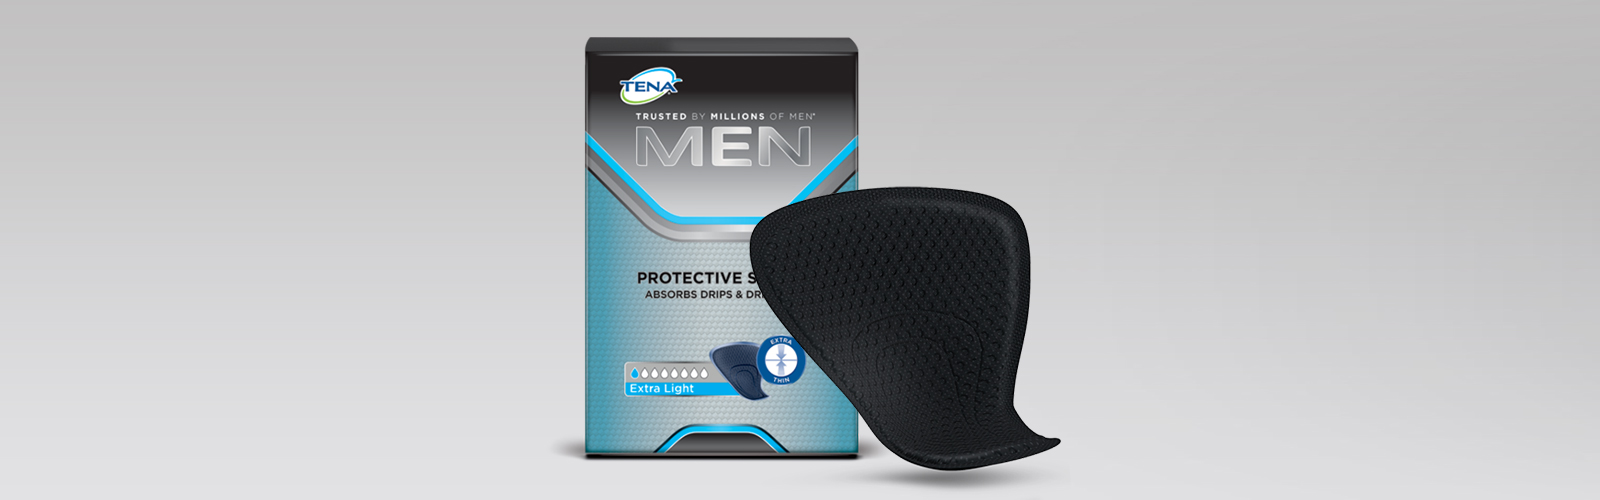 TENA Men Protective Shield product video